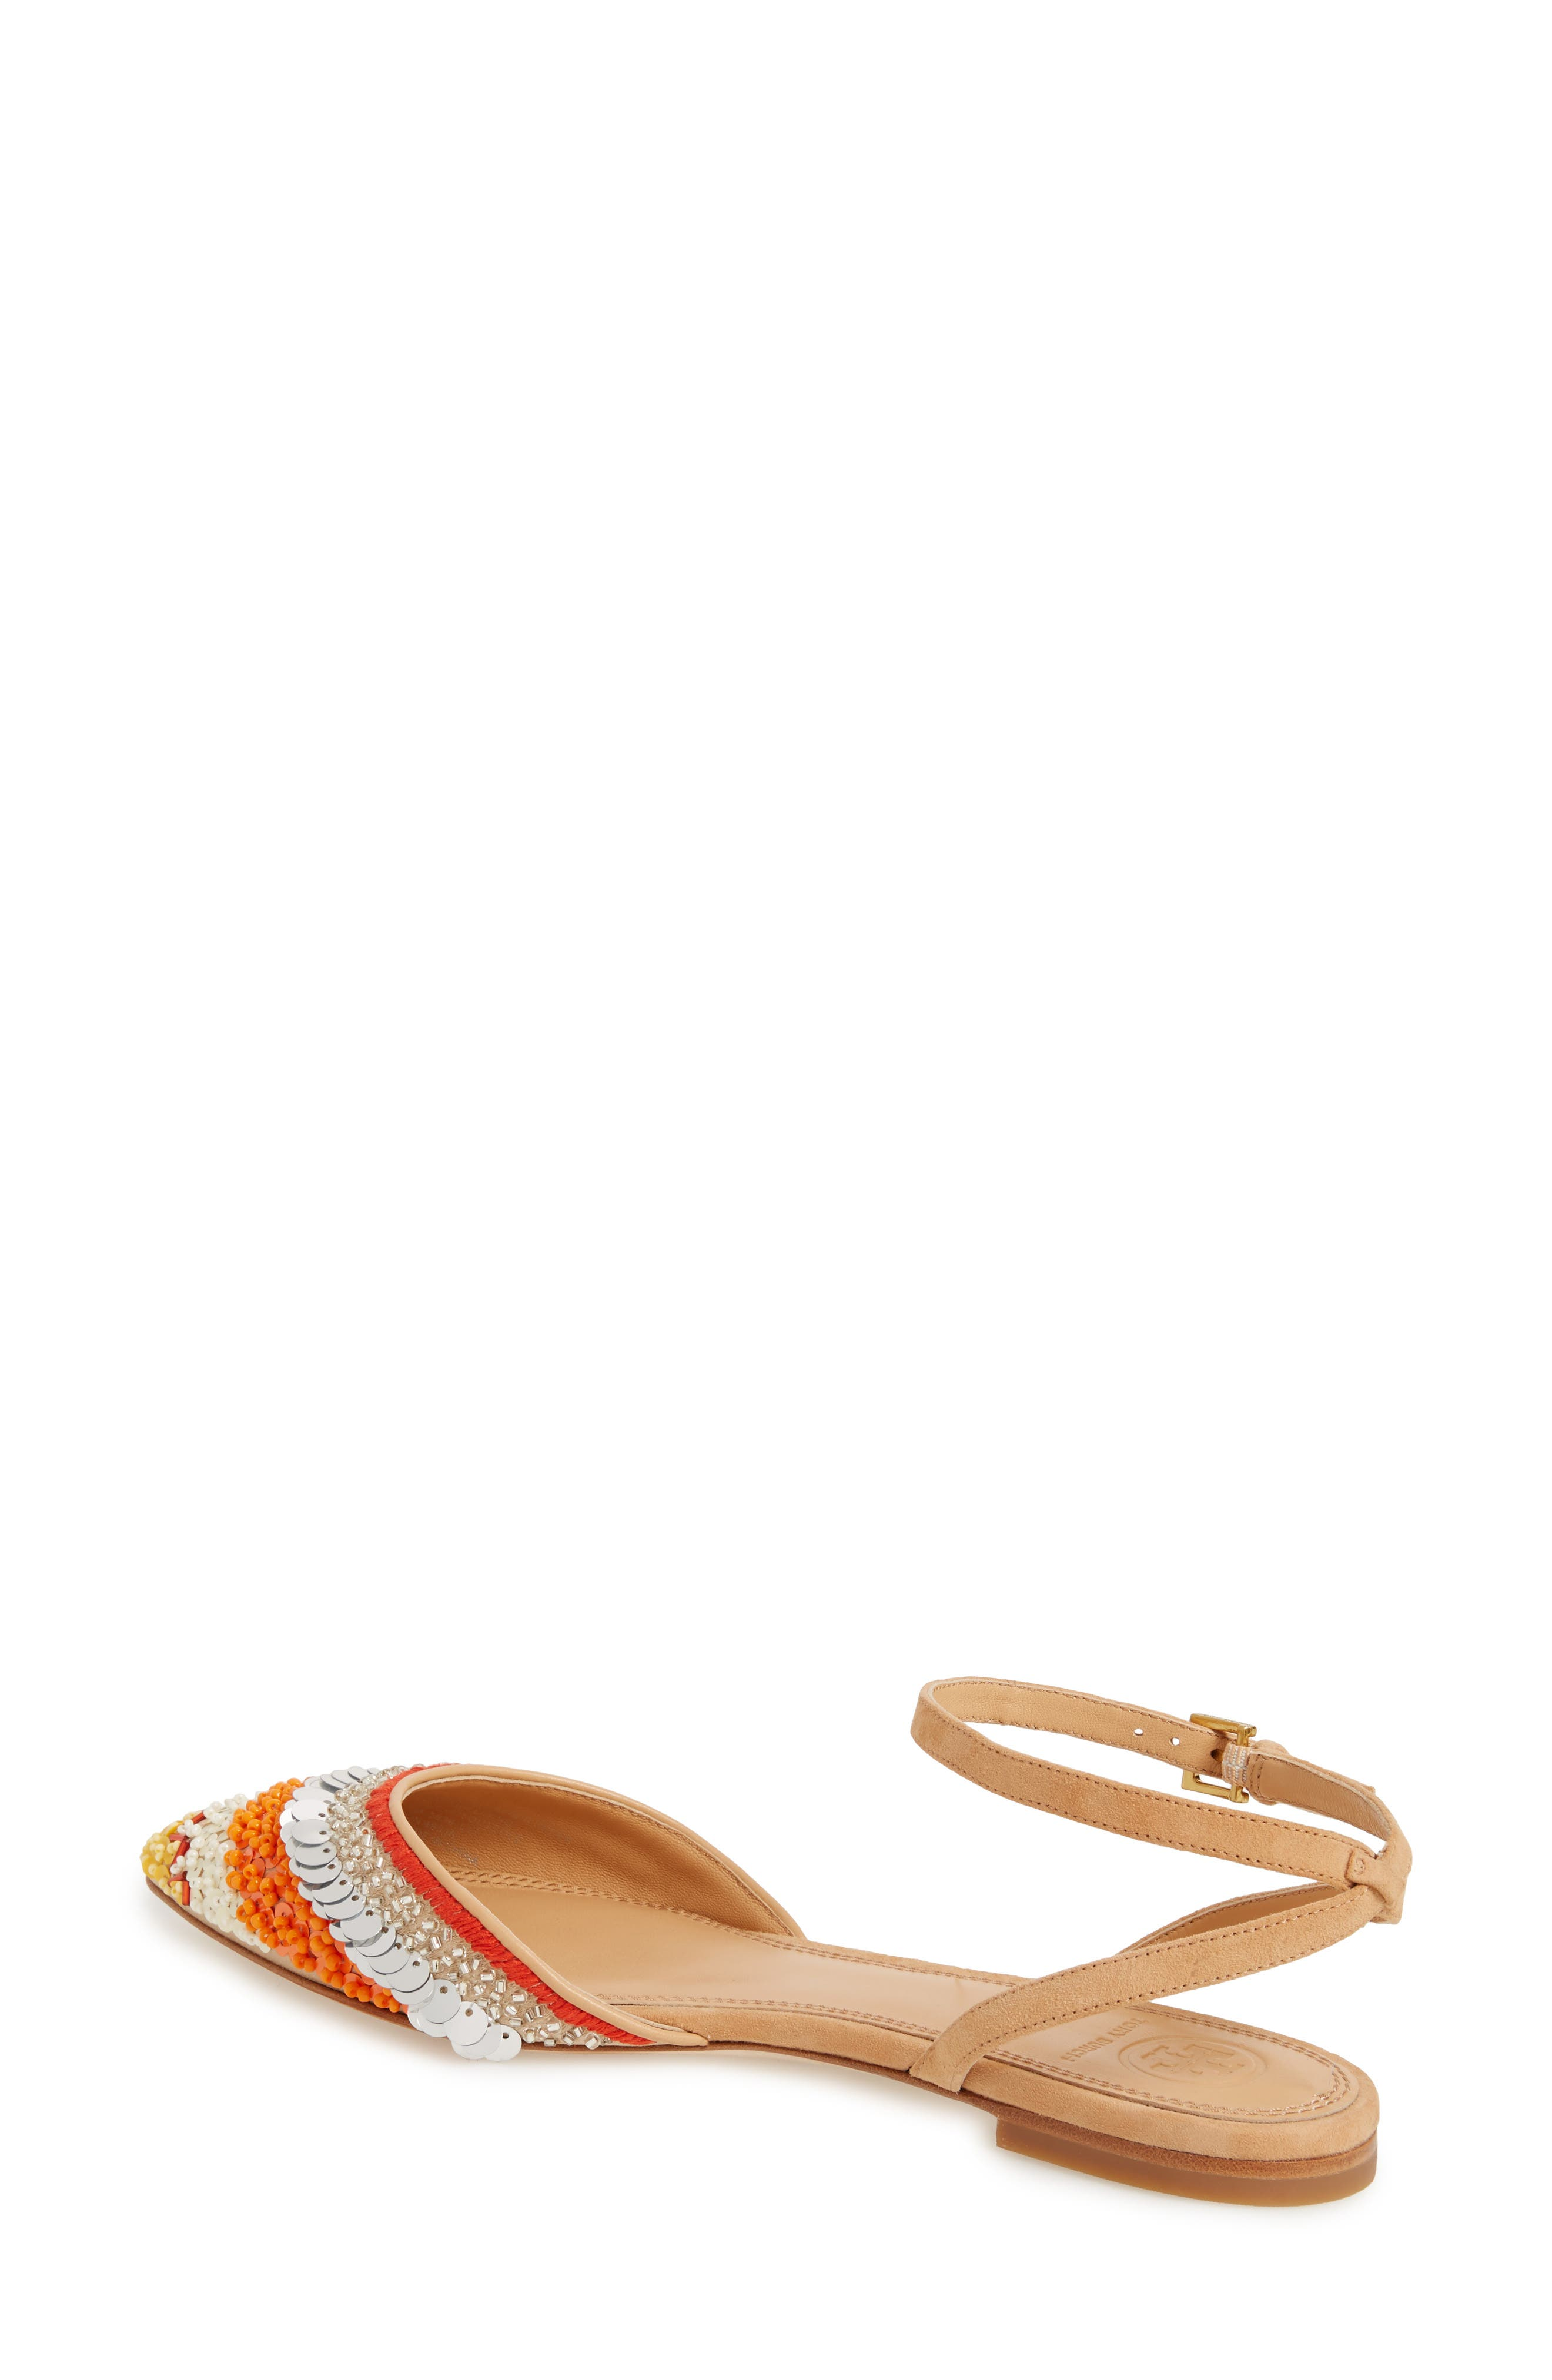 Isle Embellished Ankle Strap Flat,                             Alternate thumbnail 2, color,                             Multi Color/ Natural